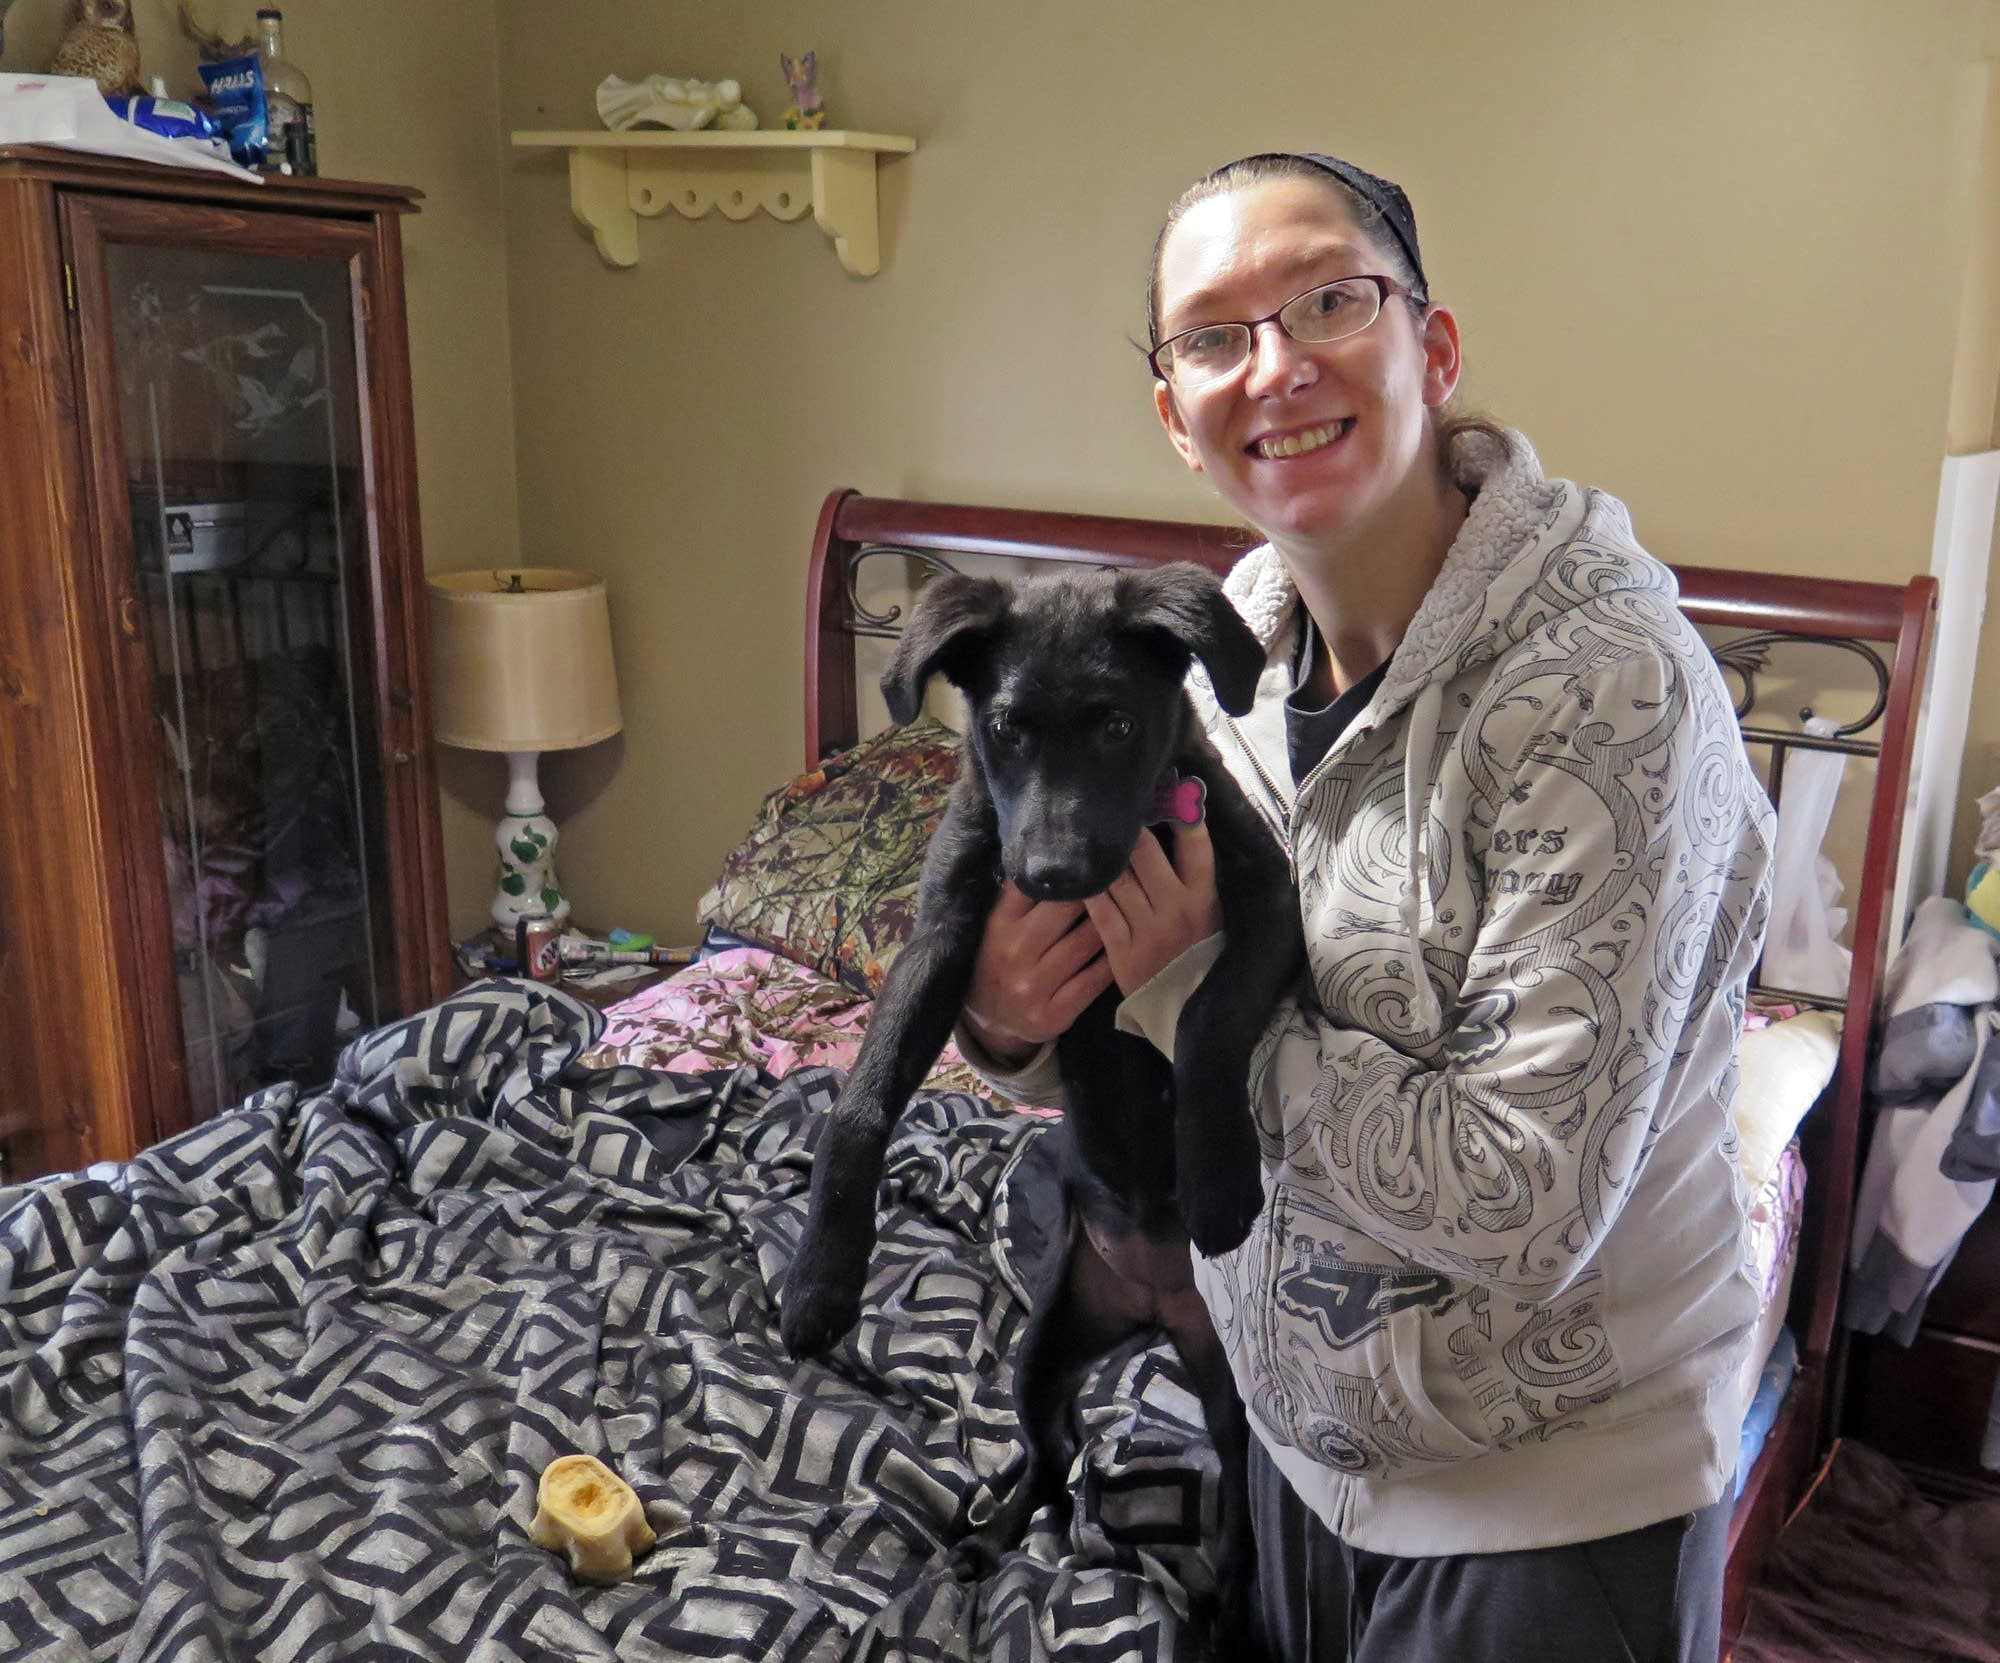 Brittany Dubbels poses with one of her dogs in her Rochester apartment.